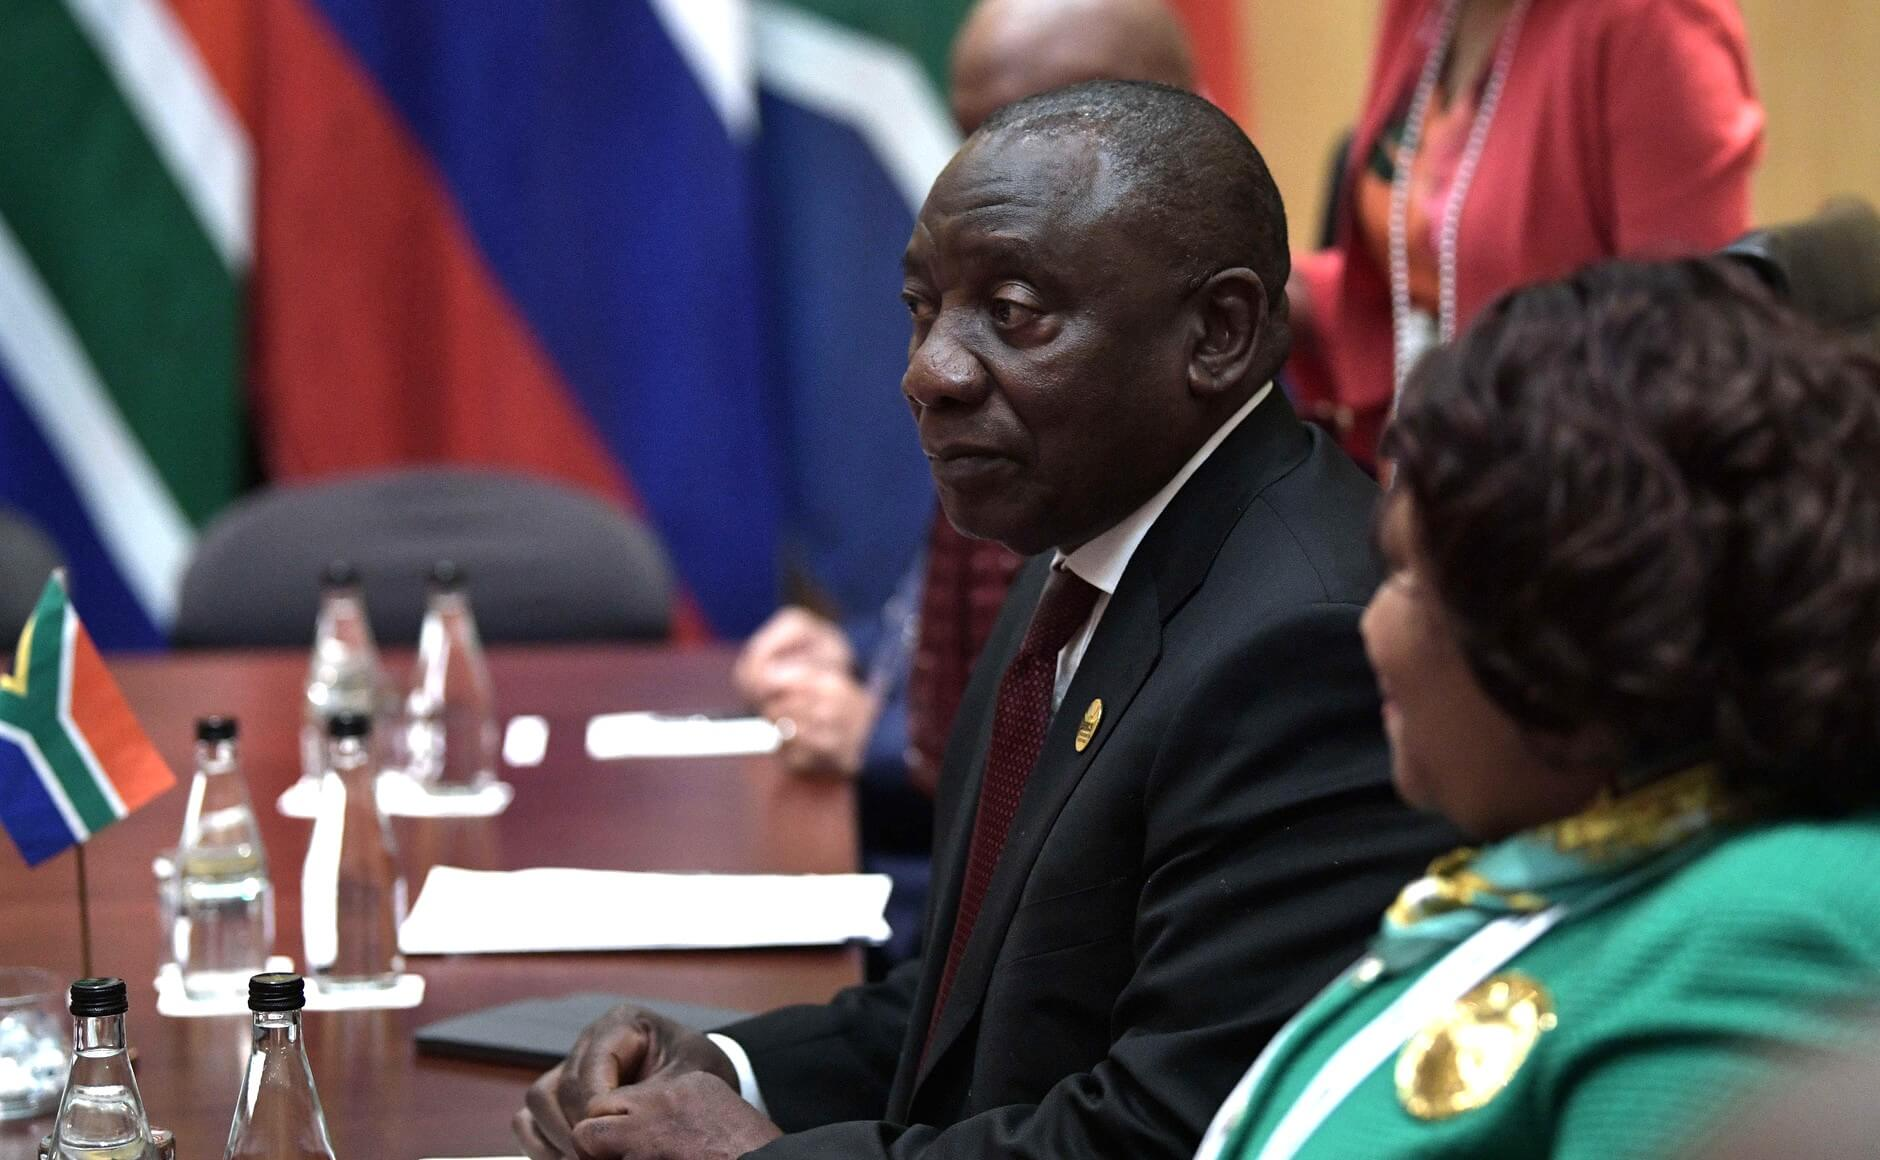 Vladimir_Putin_and_Cyril_Ramaphosa,_26_july_2018_(2)